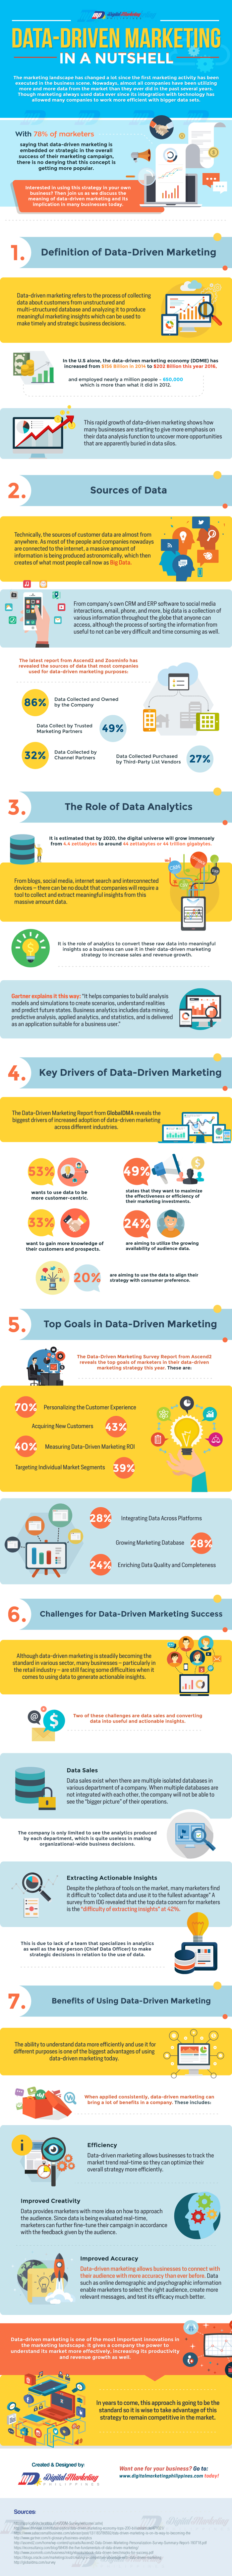 data-driven-marketing-in-a-nutshell